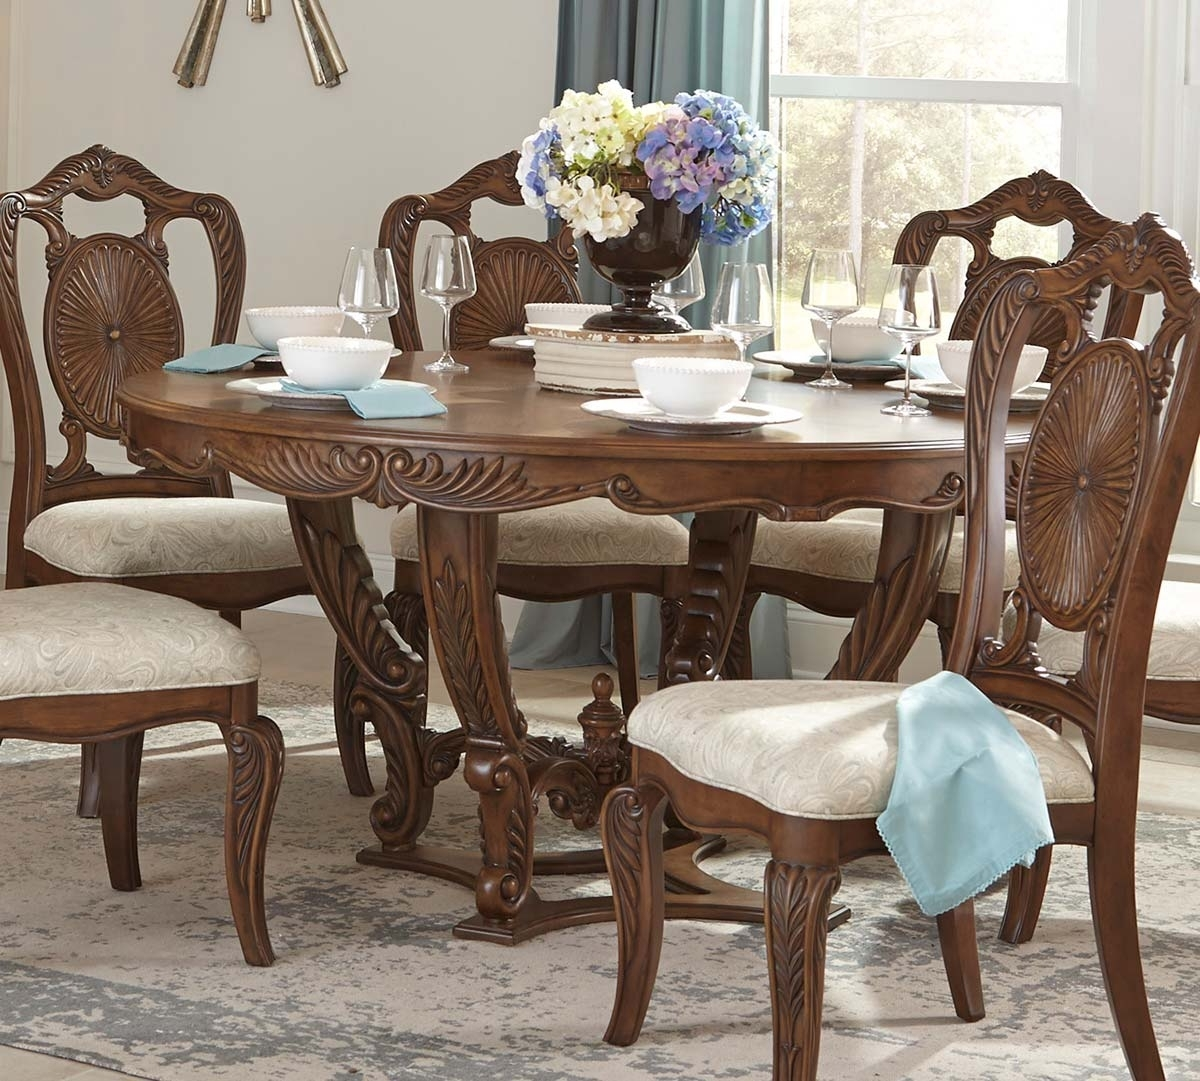 Latest Homelegance Moorewood Park Round Dining Table With Leaf – Pecan 1704 Pertaining To Bale Rustic Grey Dining Tables (View 15 of 25)